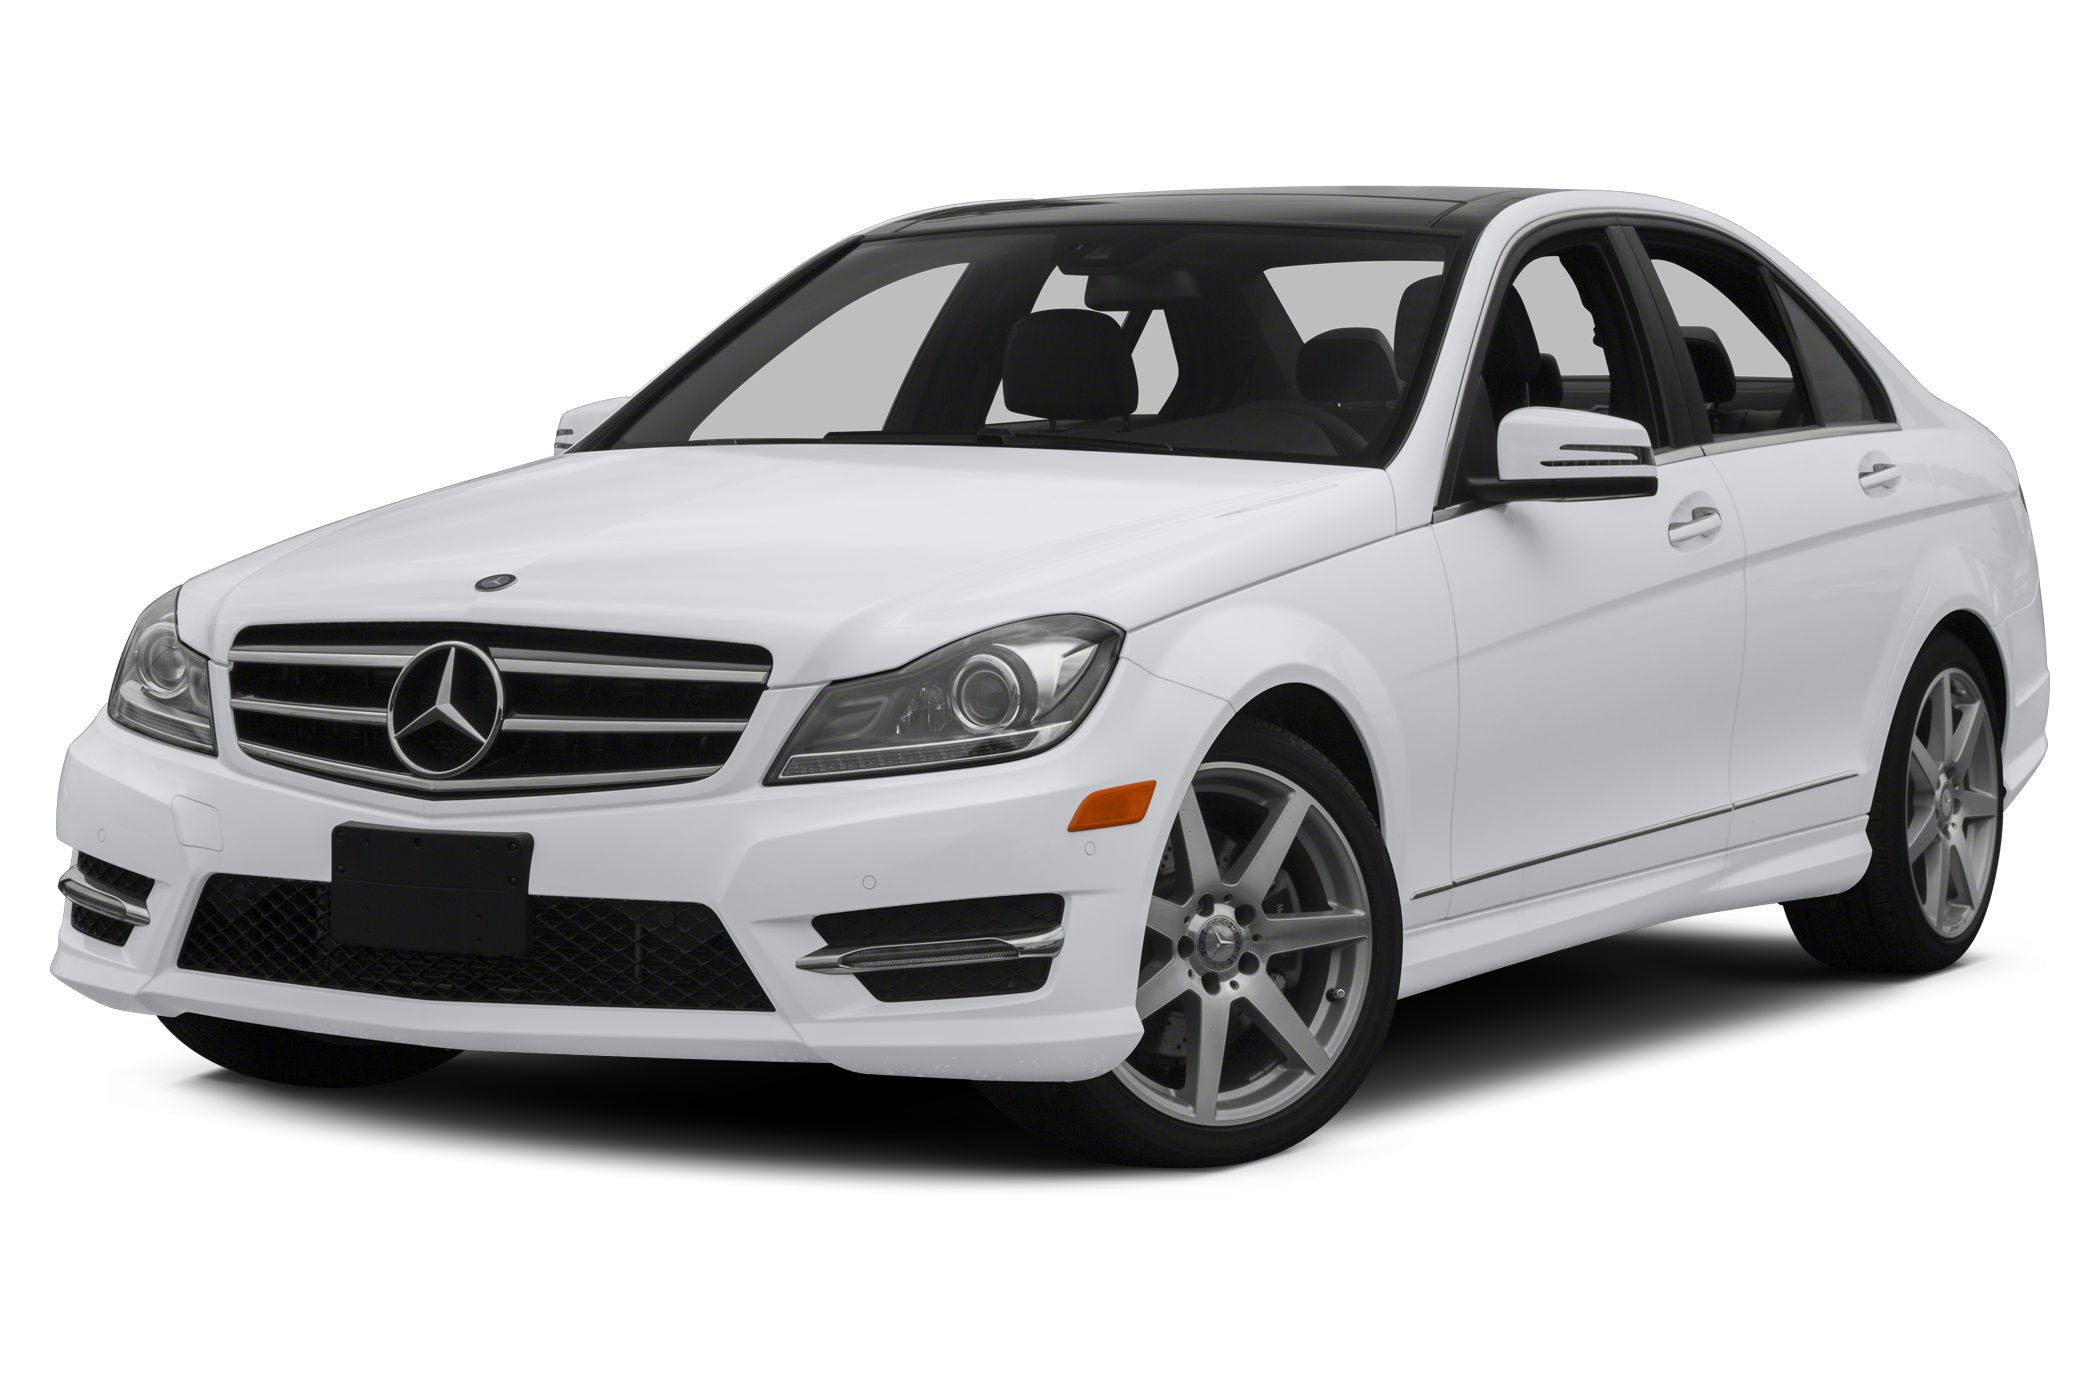 2014 Mercedes-Benz C-Class C350 Sport Coupe for sale in Louisville for $43,991 with 13,537 miles.